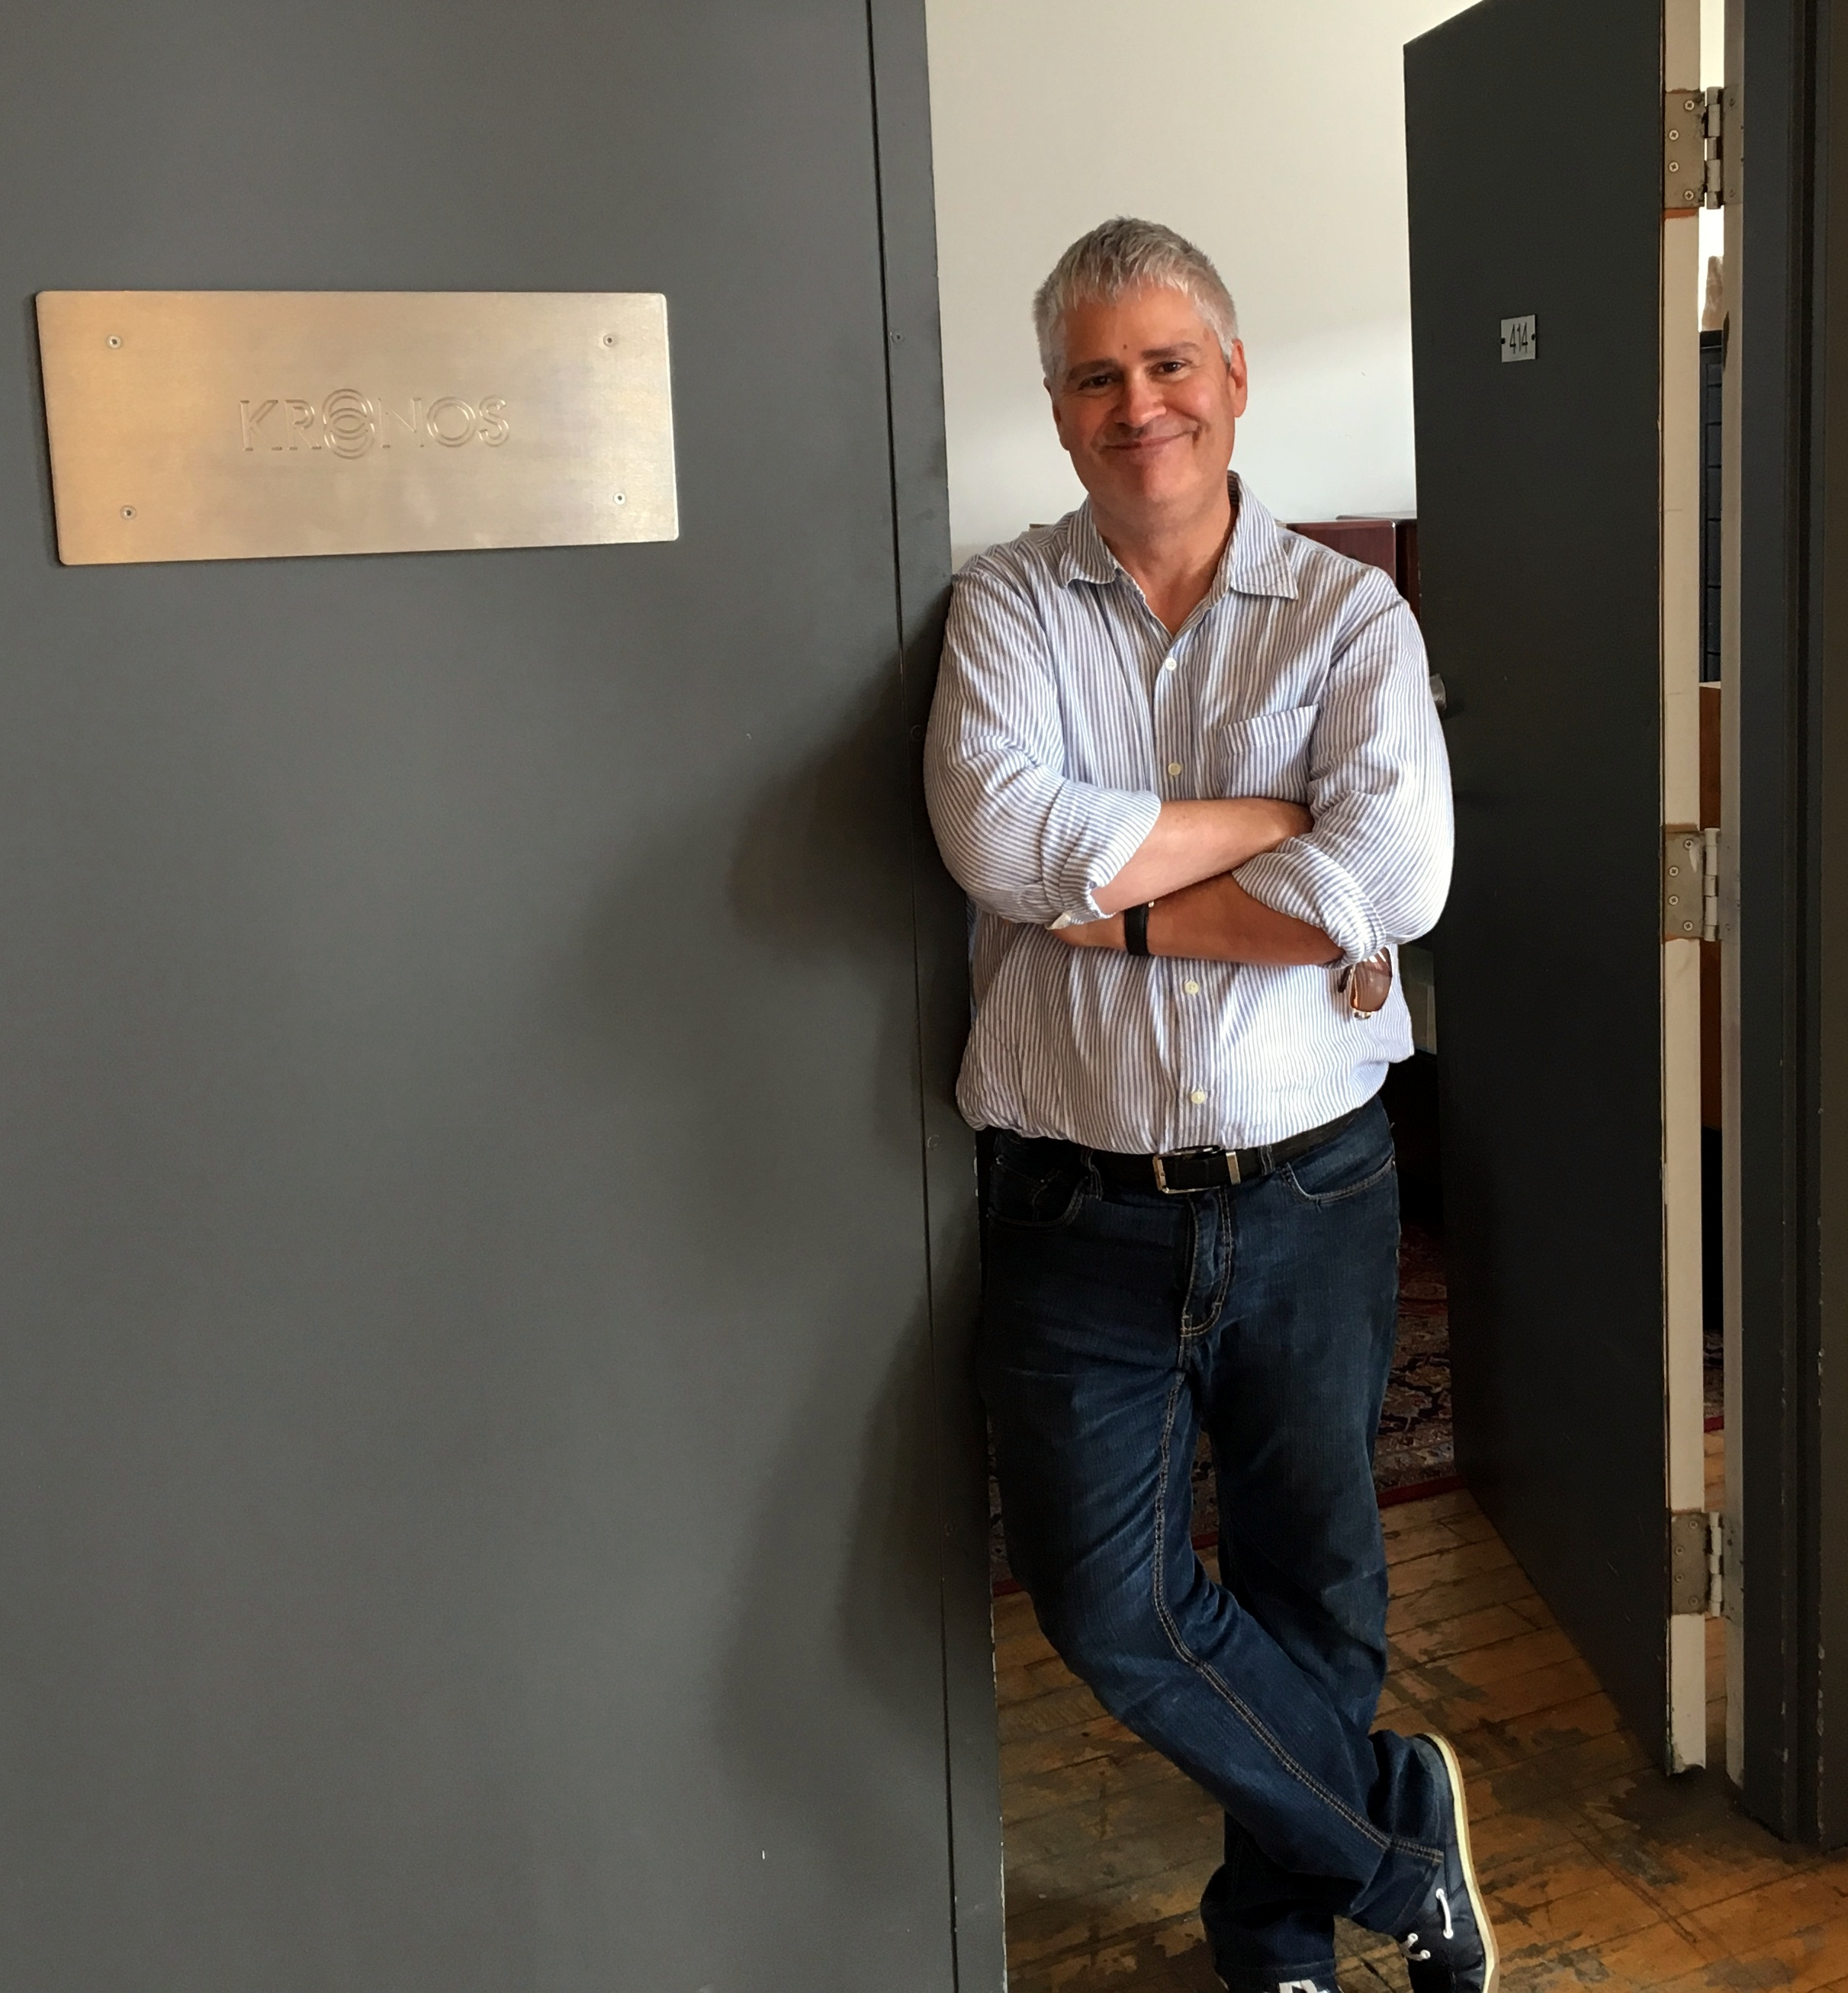 A Day with Louis Desjardins of Kronos Audio